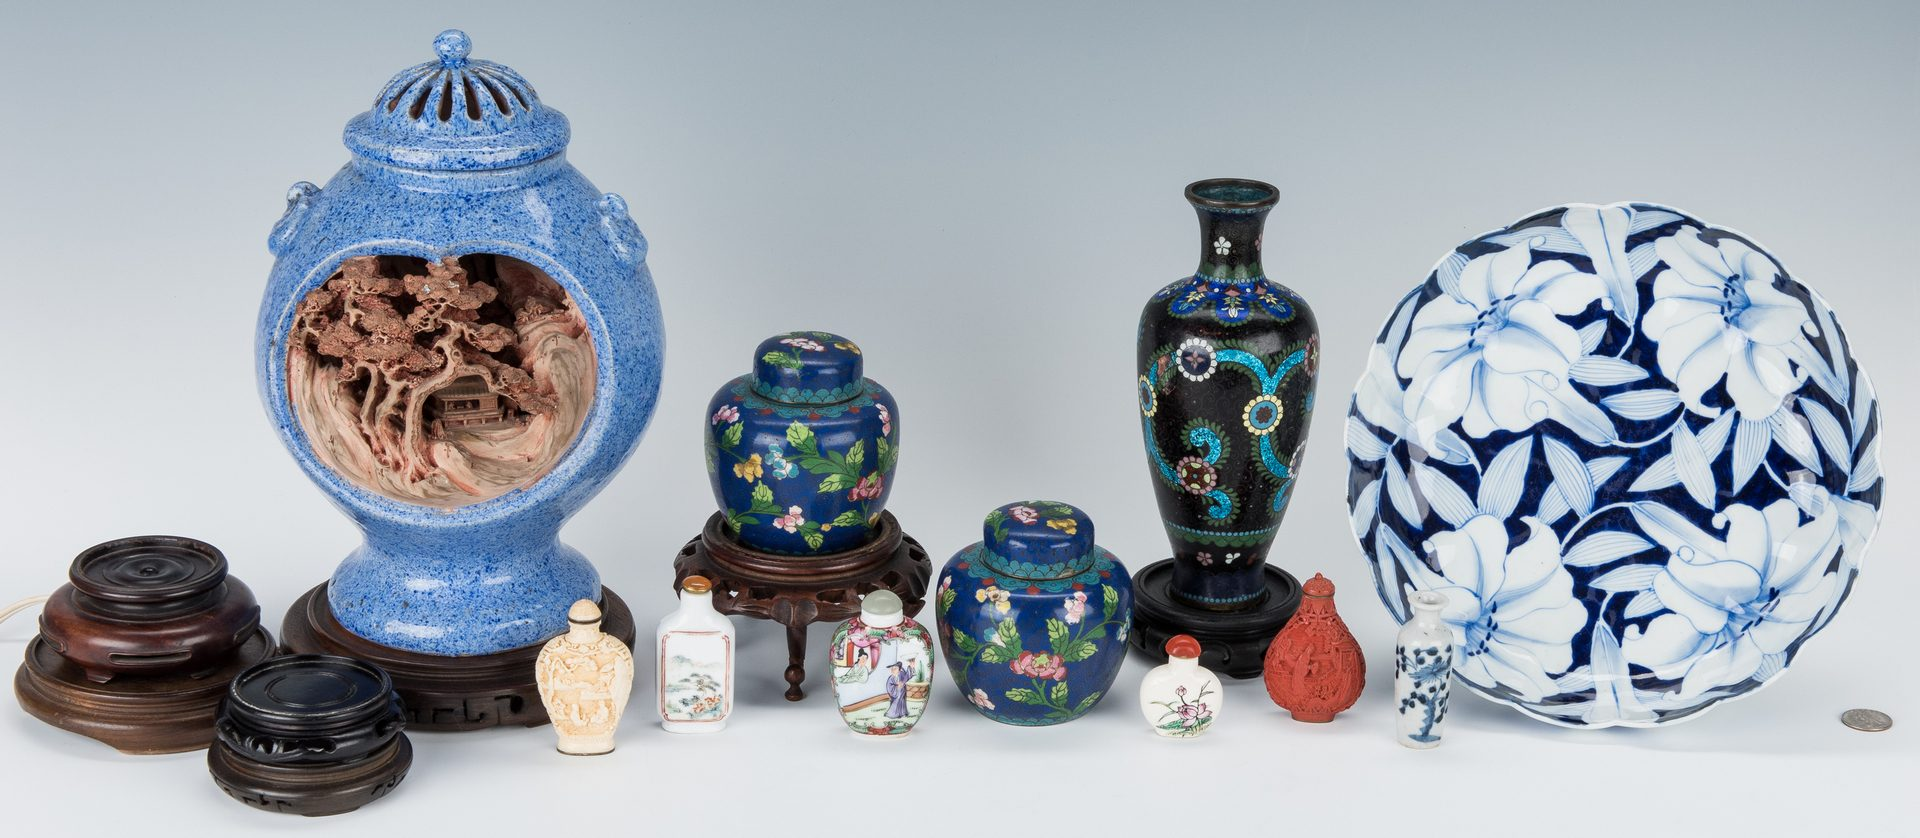 Lot 13: Group of 17 Assorted Asian Table Items